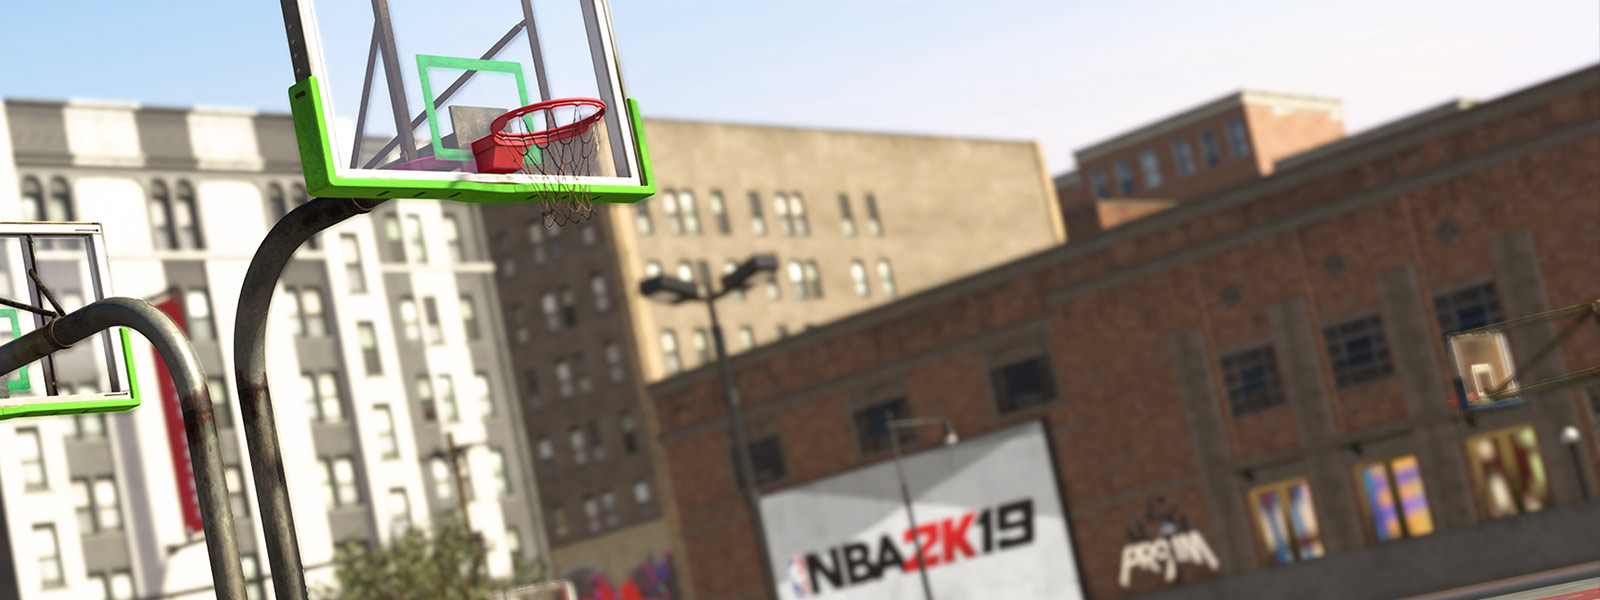 Side view of a basketball hoop on a basketball court in a city